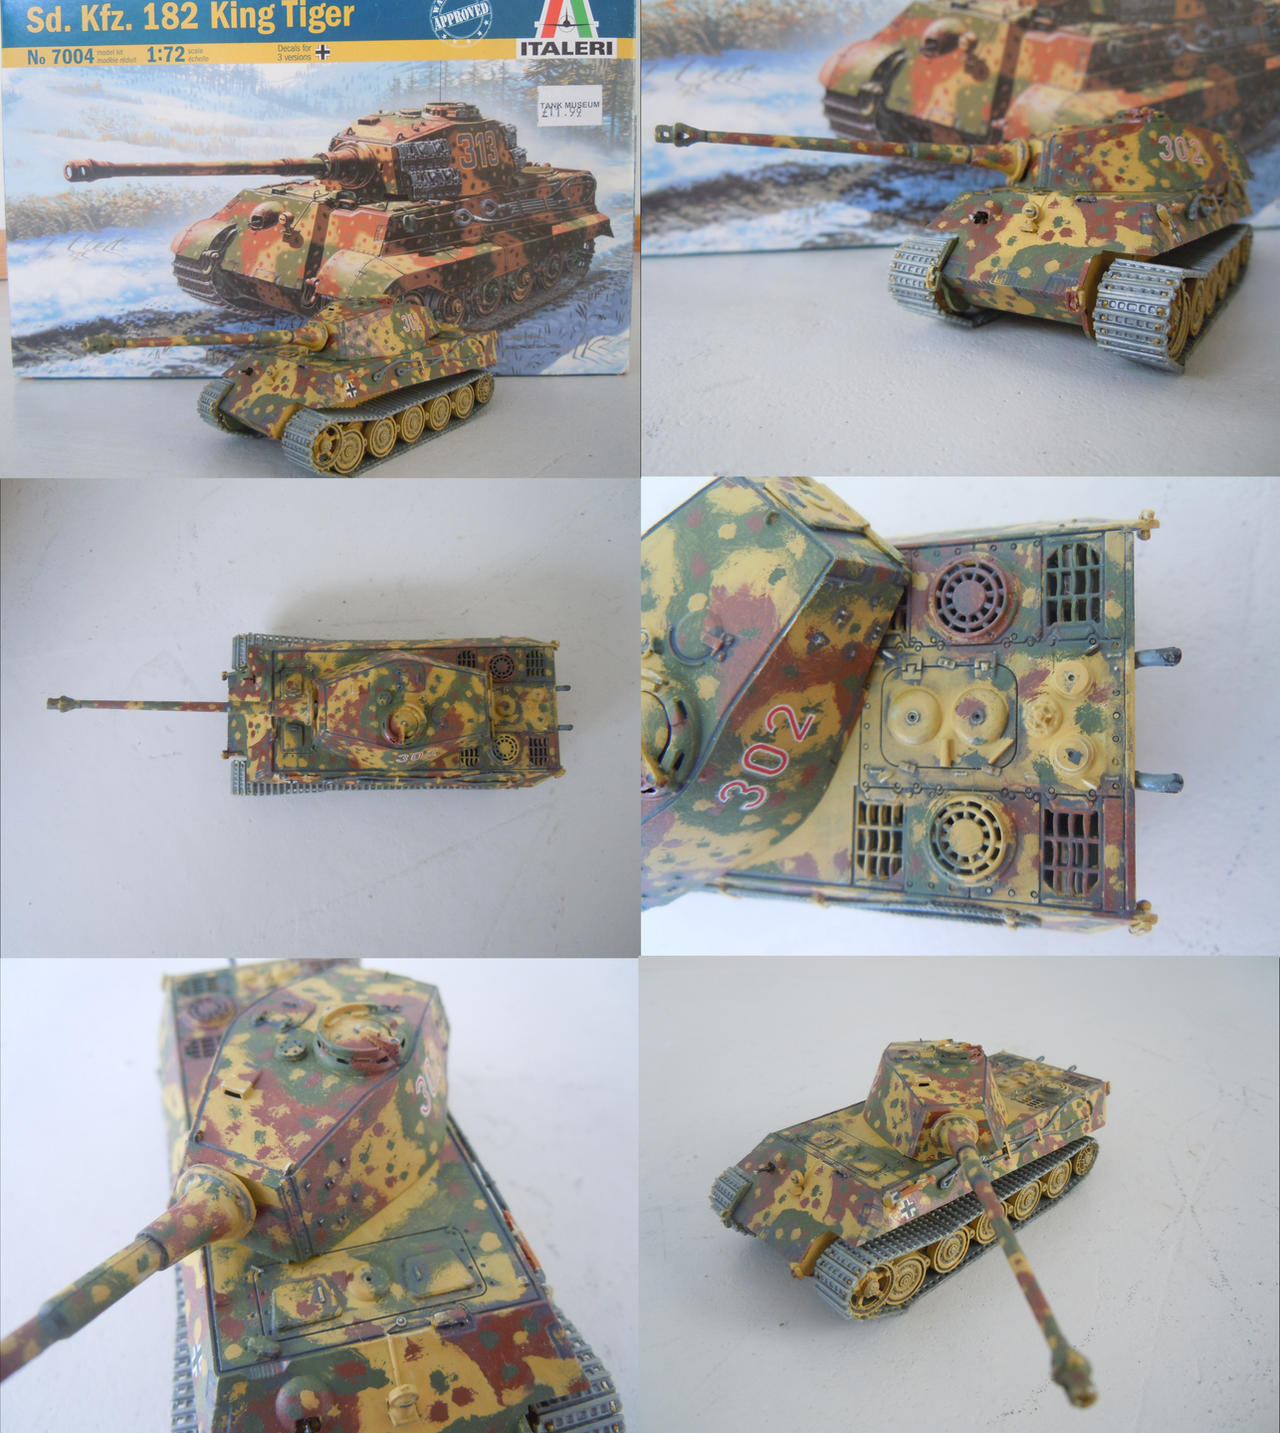 Italeri King Tiger 1/72 by warrior1944